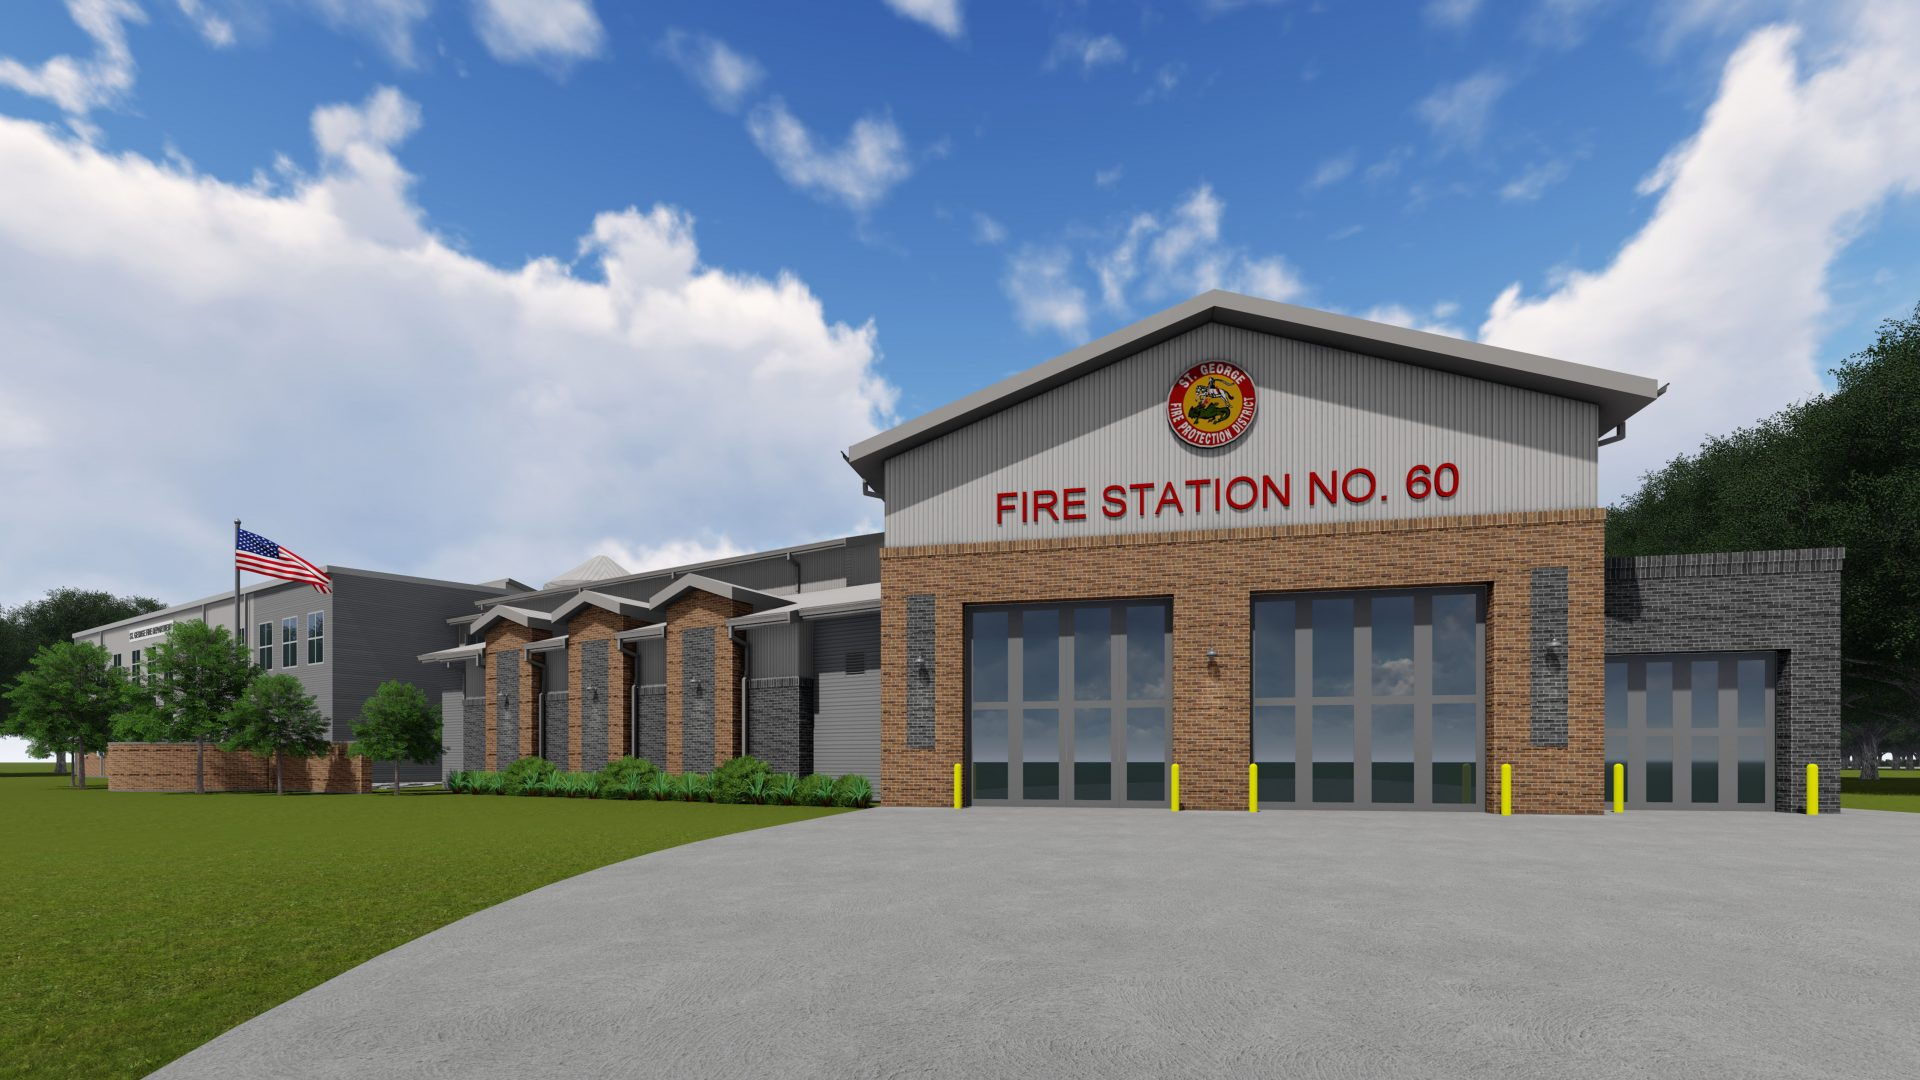 Rendering of exterior of Fire Station 60